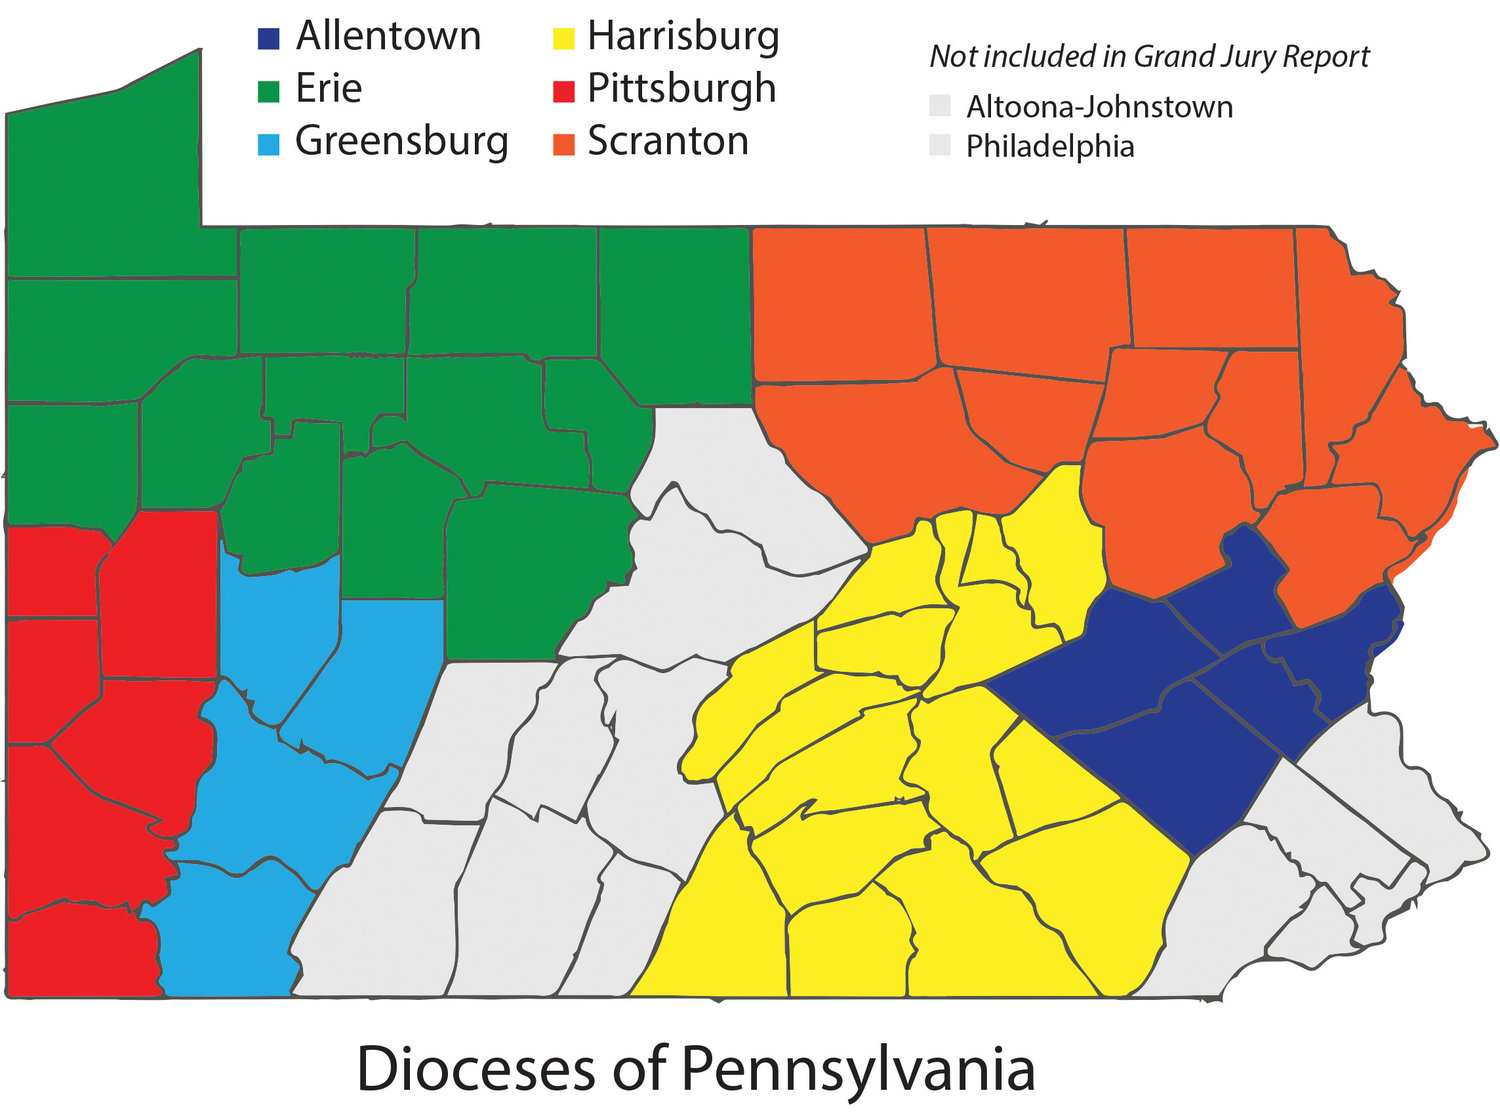 The map of Pennsylvania shows the six Catholic dioceses covered by a grand jury report on an investigation of abuse claims made in those dioceses. The report covers a span of more than 70 years. Former New York Times religion reporter Peter Steinfels, writing in Commonweal magazine, challenges one of the report's two main charges.